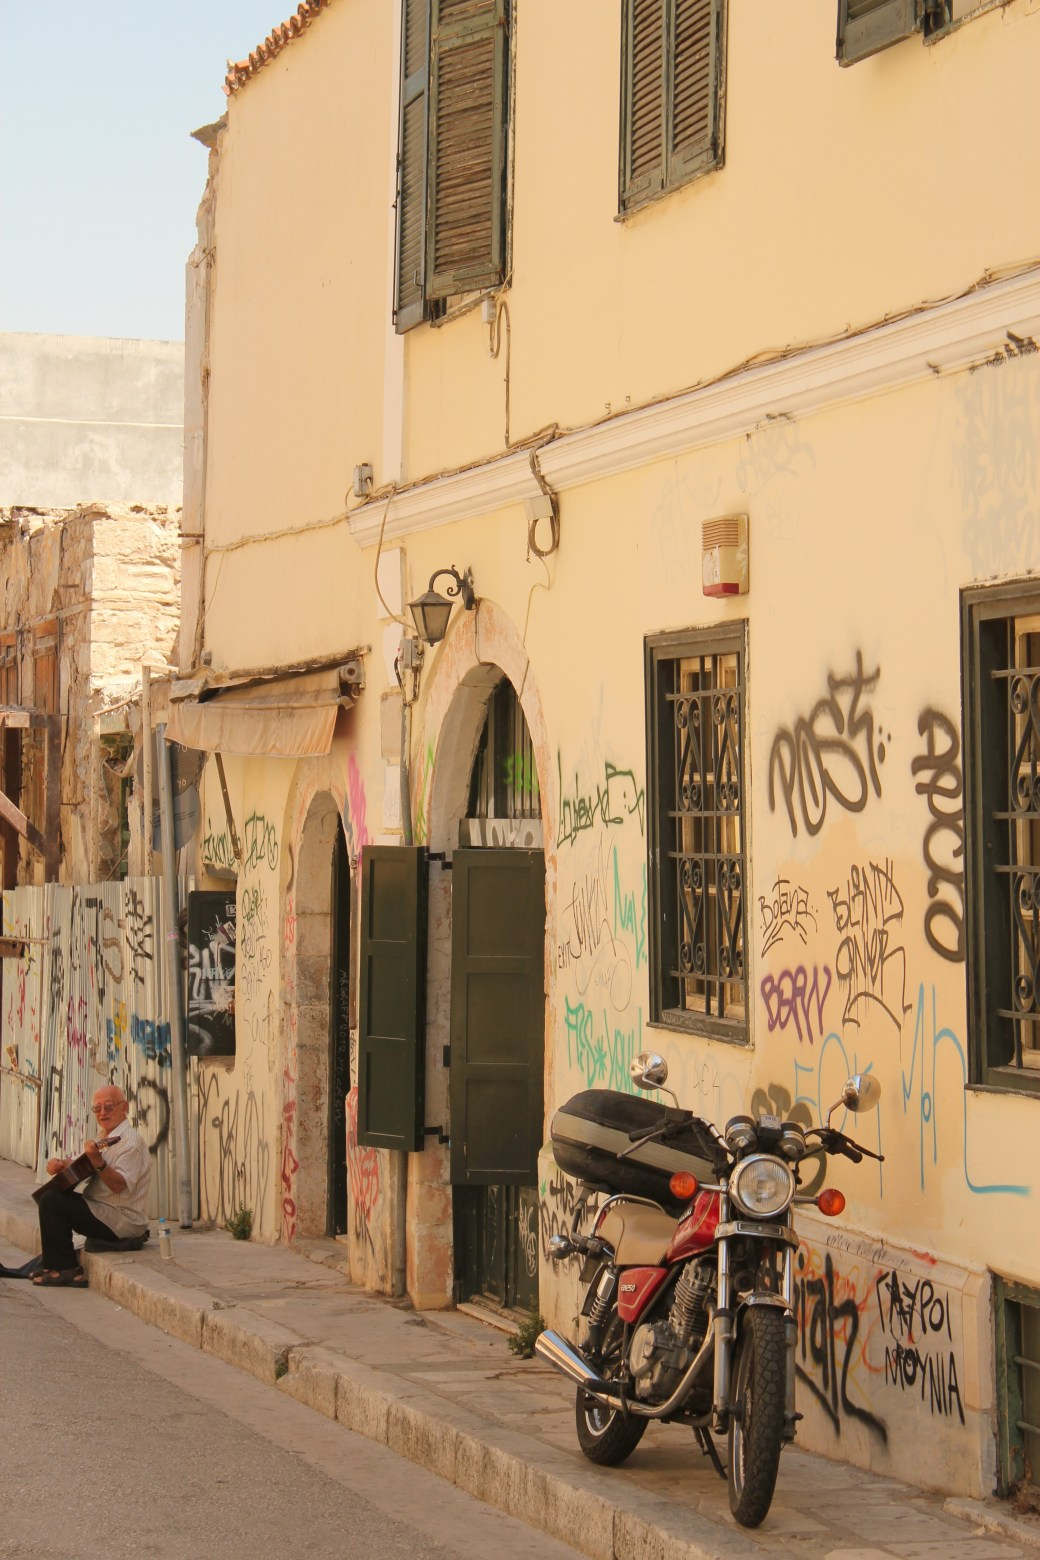 Unique Location; Athens, Greece; 2013